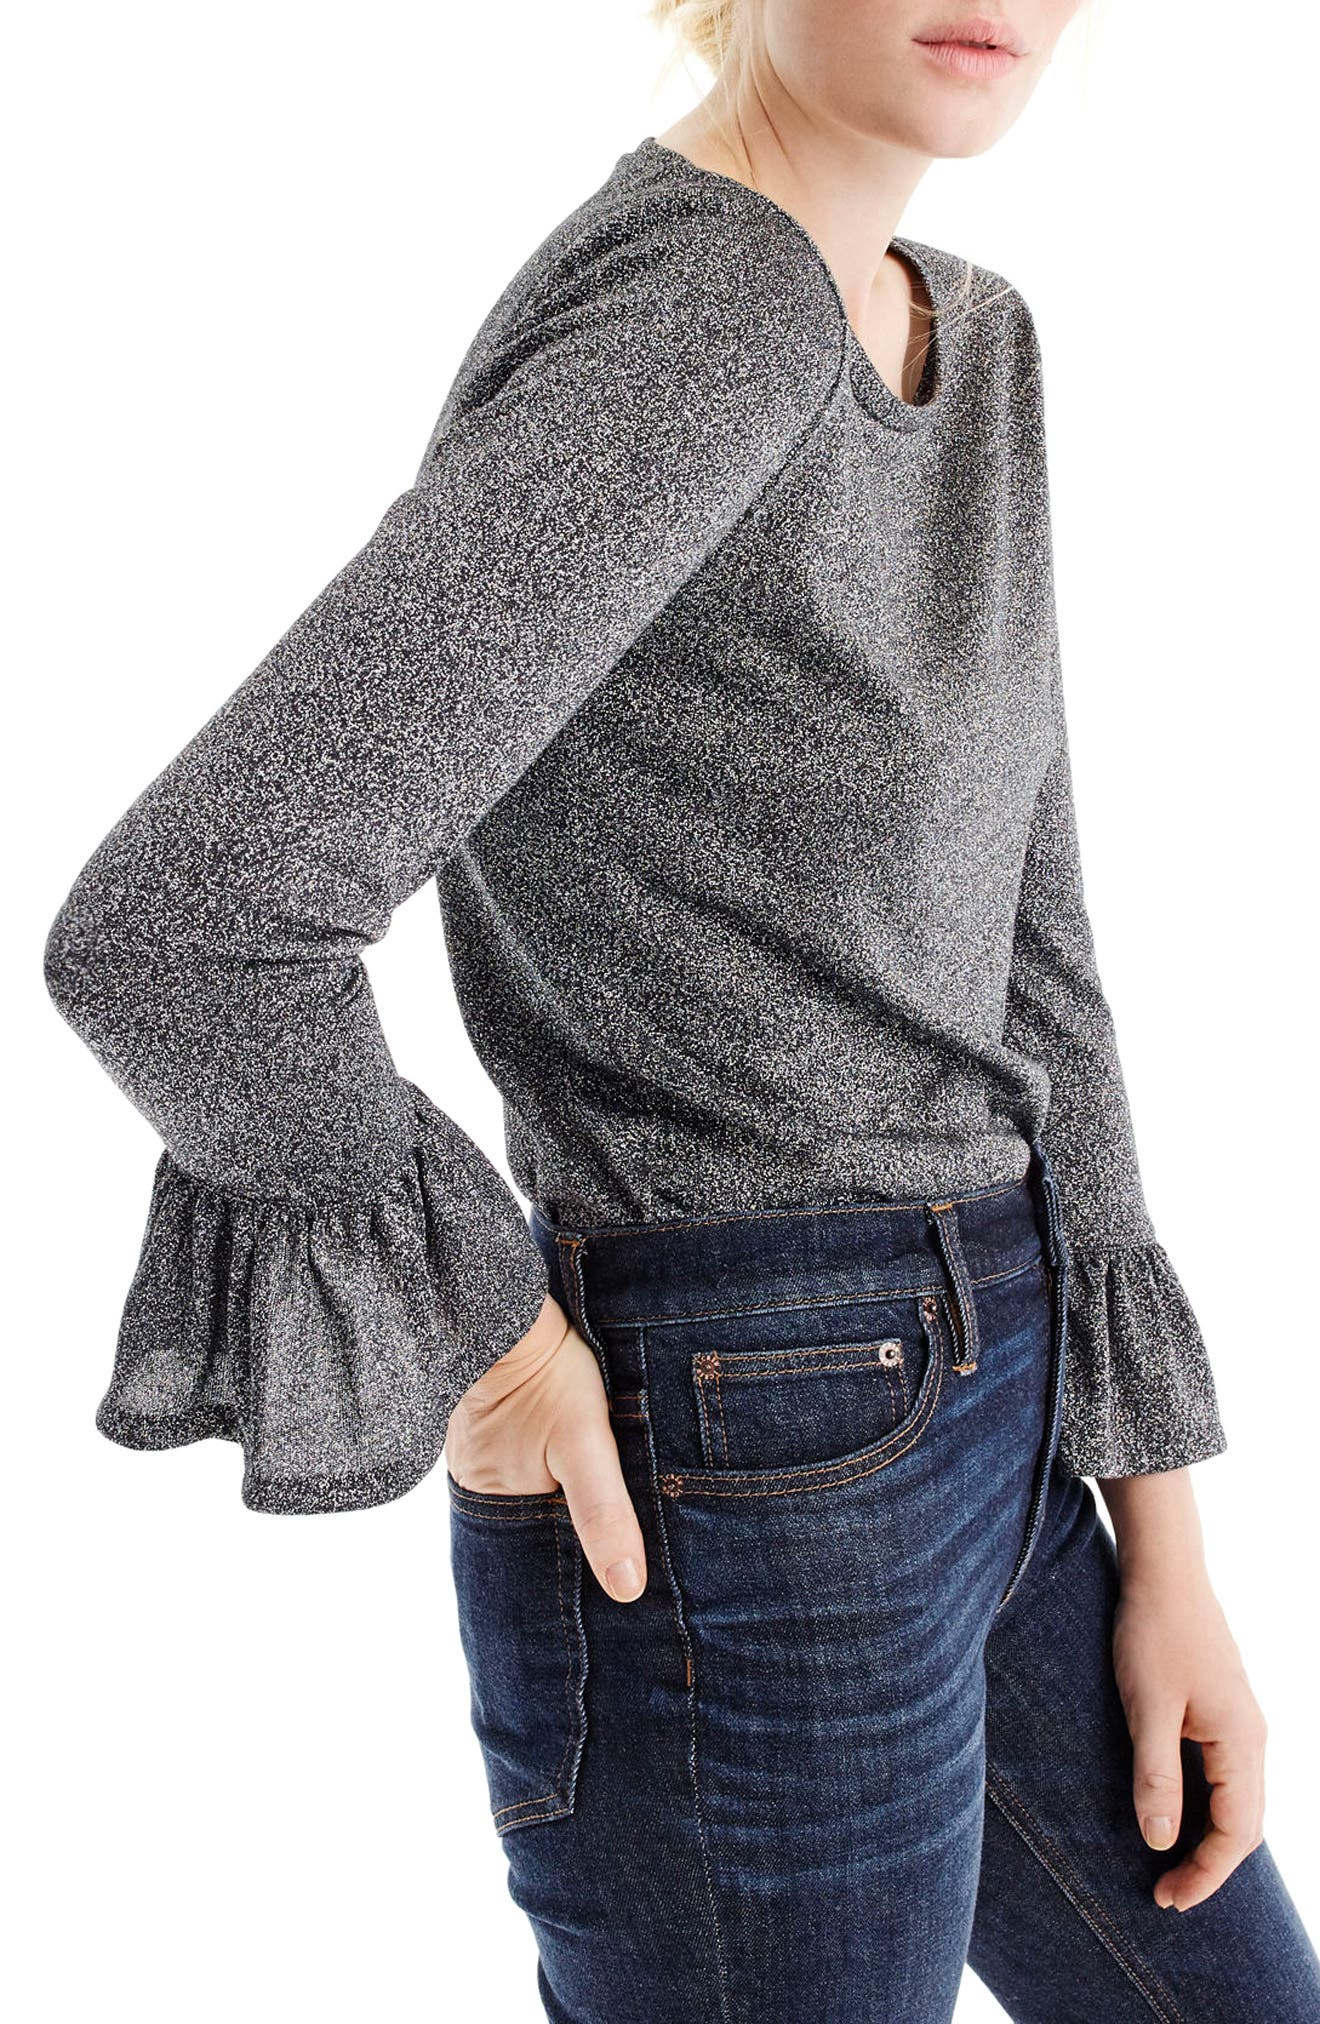 J.Crew Bell Sleeve Sparkle Top,                         Main,                         color, Heather Charcoal